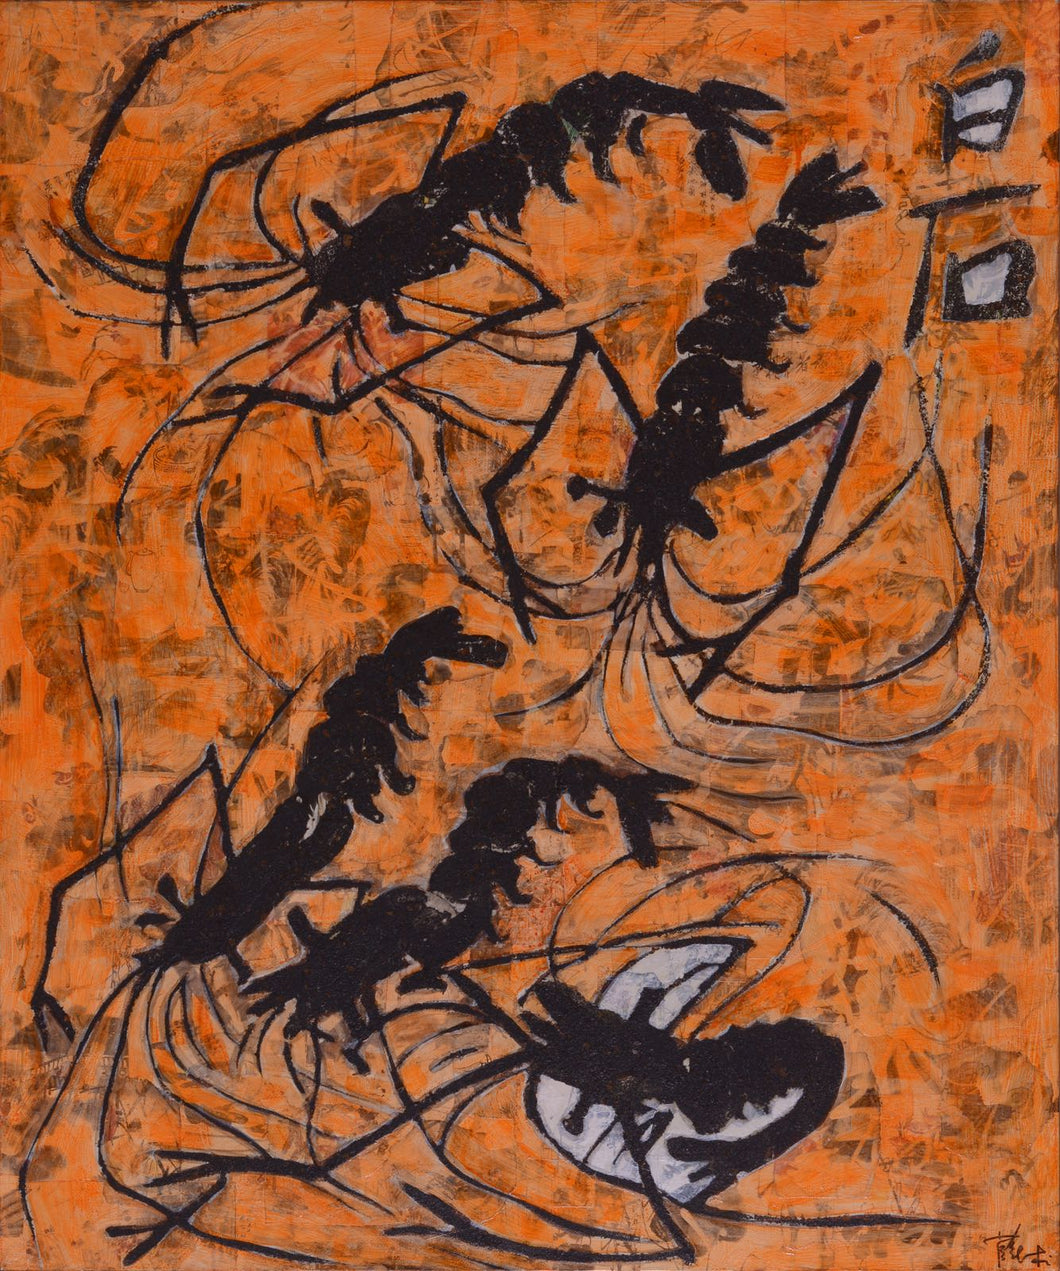 Dialogue with Qi Baishi (Shrimp) 与齐白石对话-虾